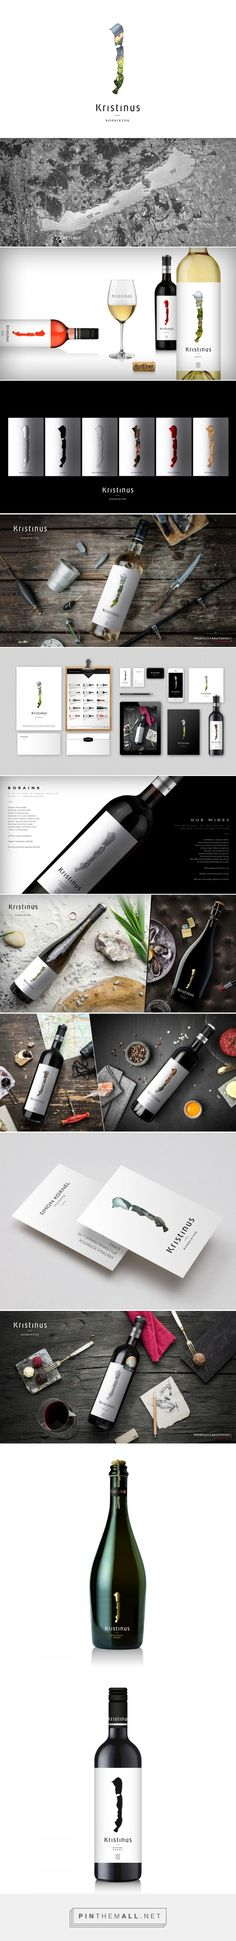 Kristinus Winery - Packaging of the World - Creative Package Design Gallery - http://www.packagingoftheworld.com/2016/10/kristinus-winery.html